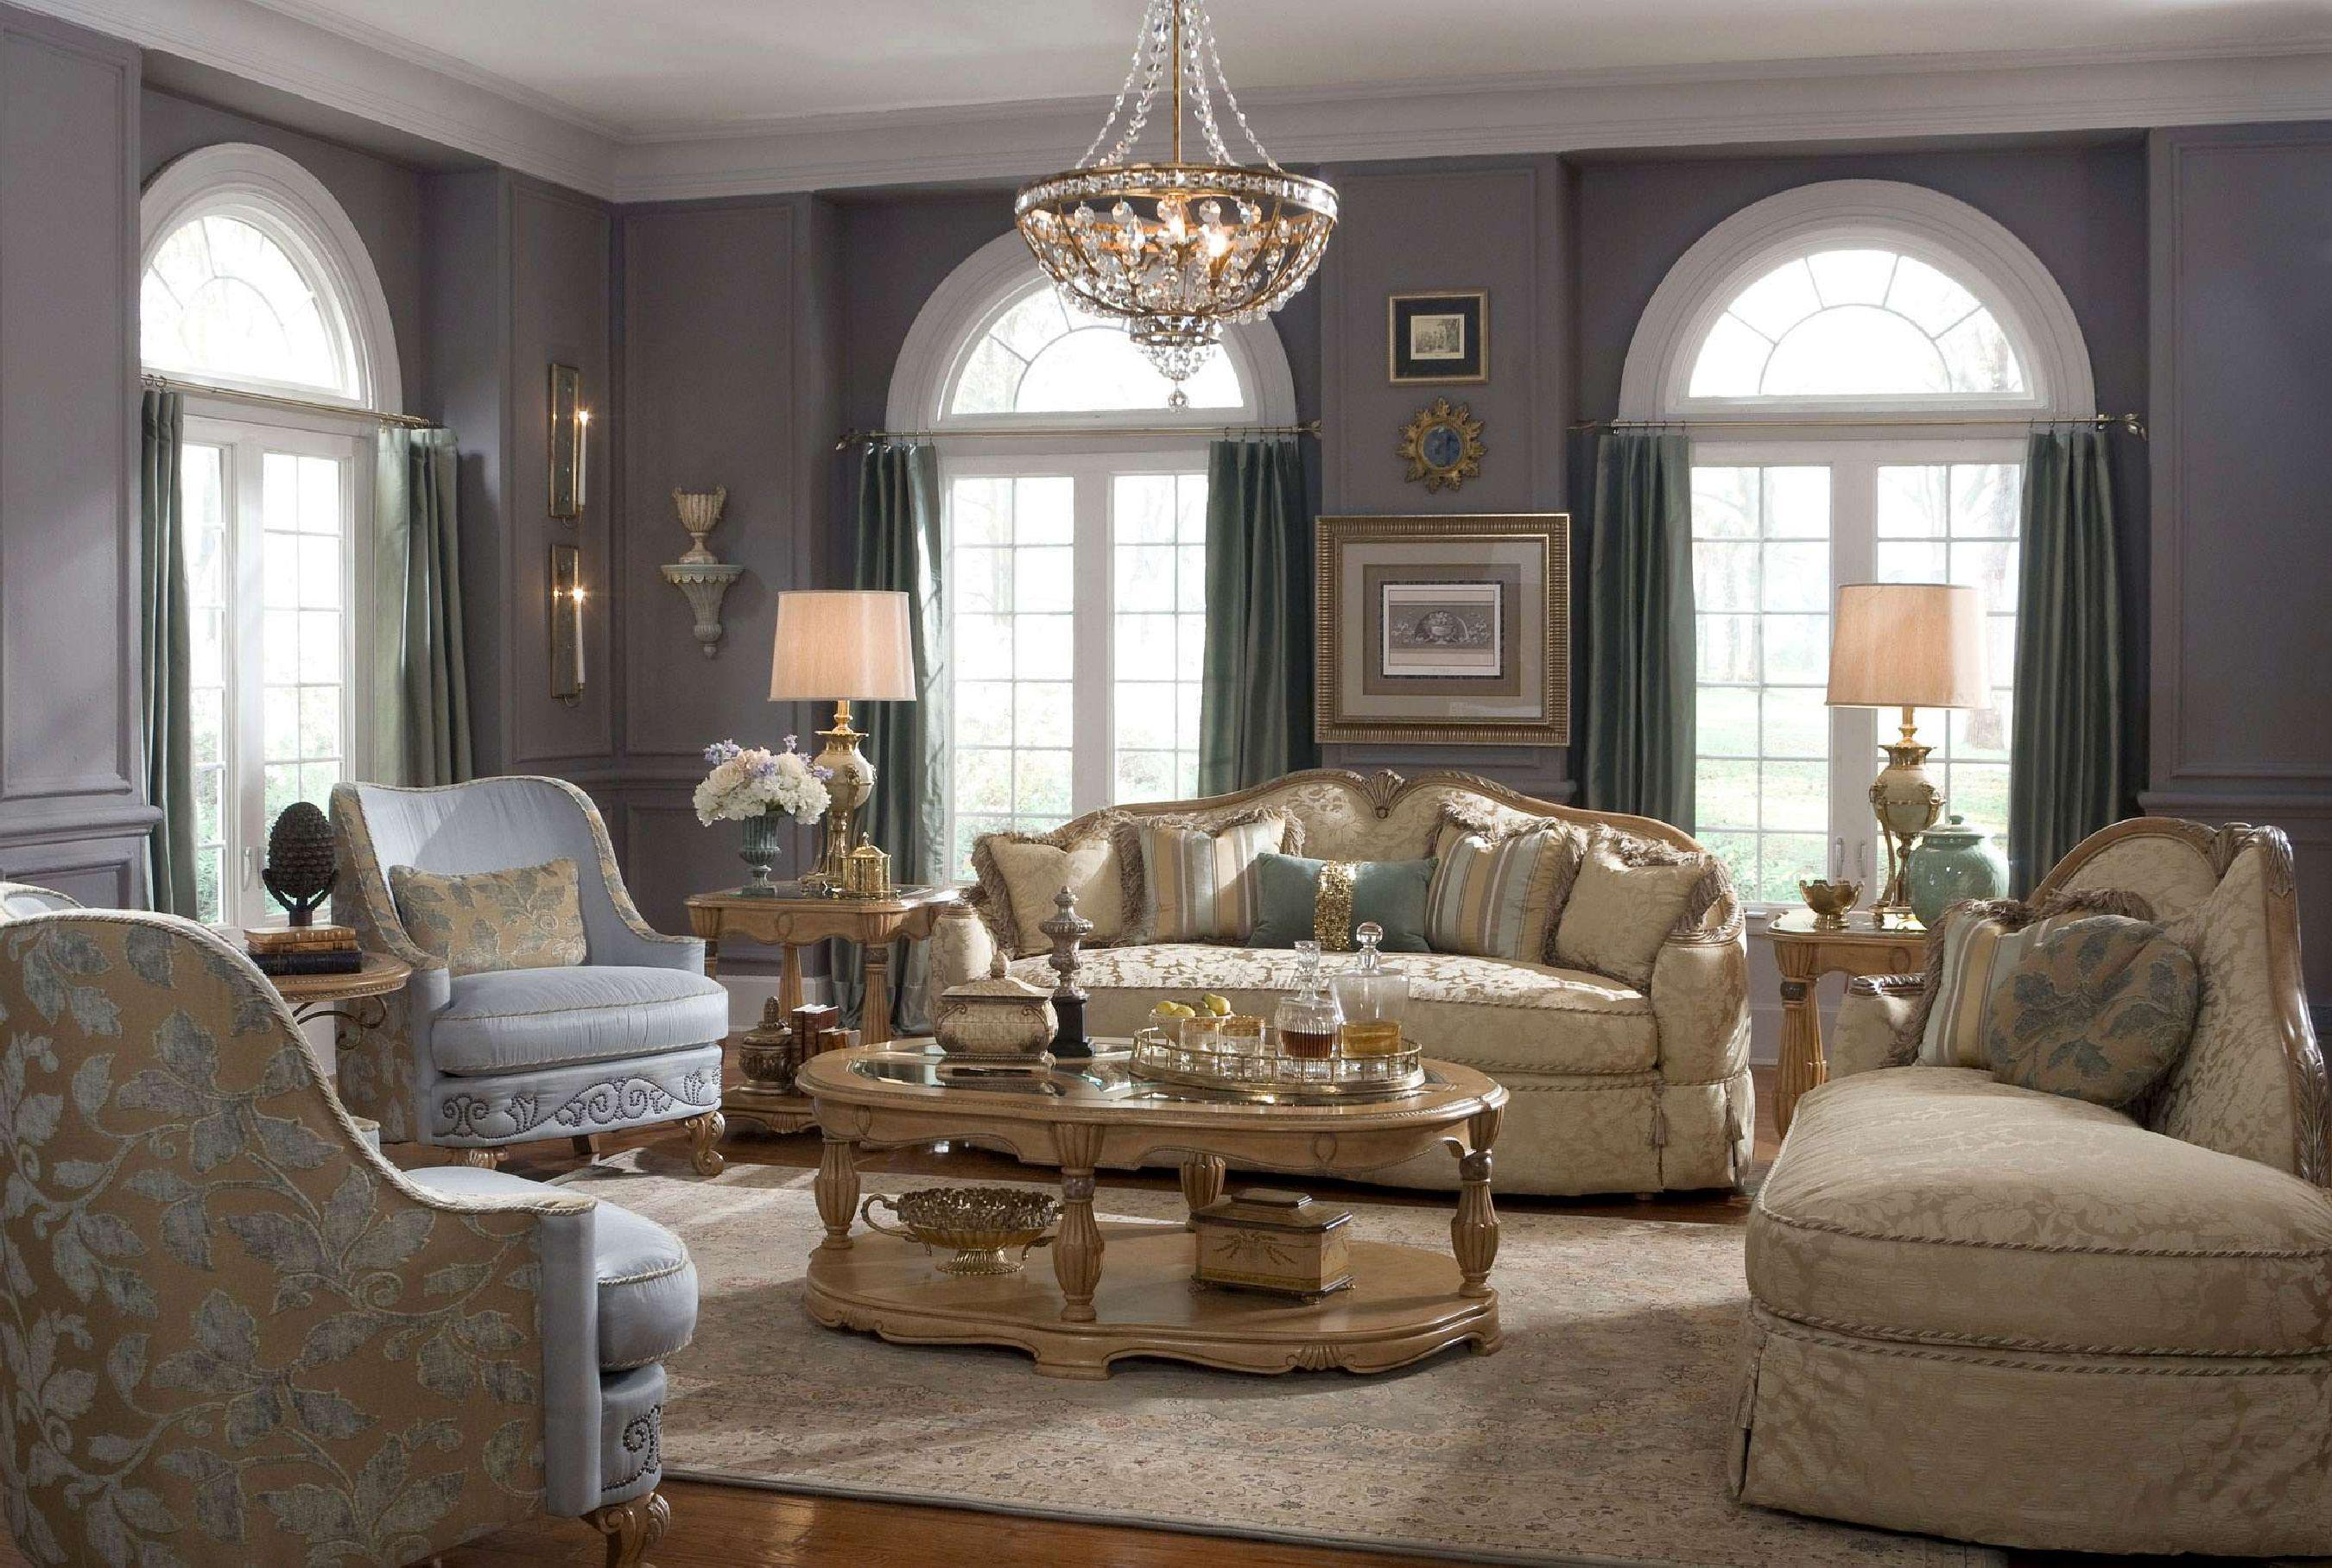 Traditional Master Bedroom 3 Benefits Of Decorating Your Home With Antiques 3